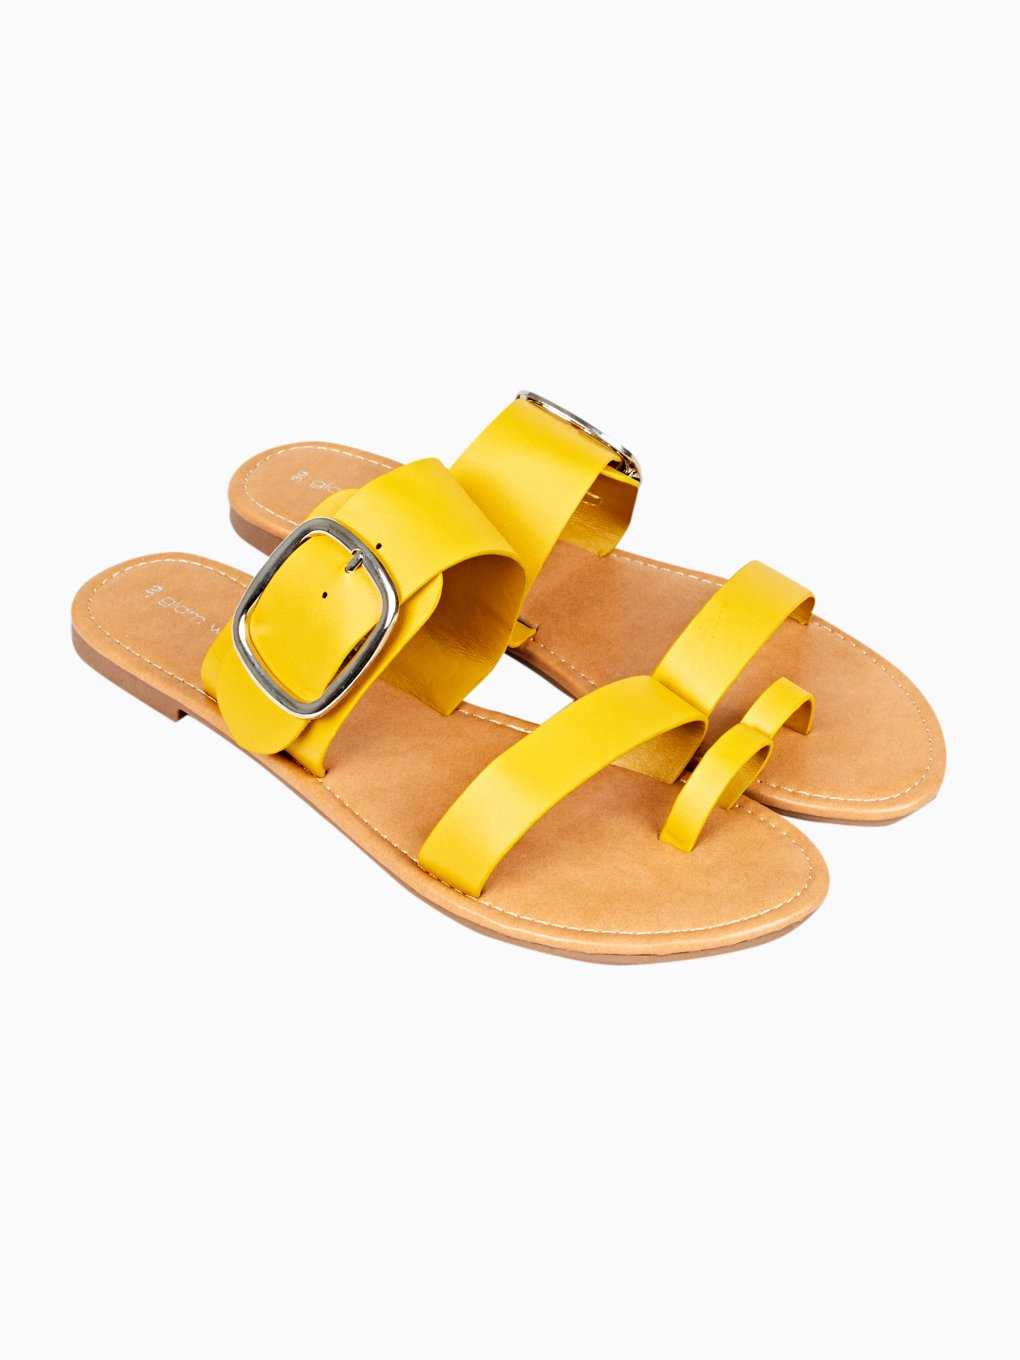 Slides with buckle